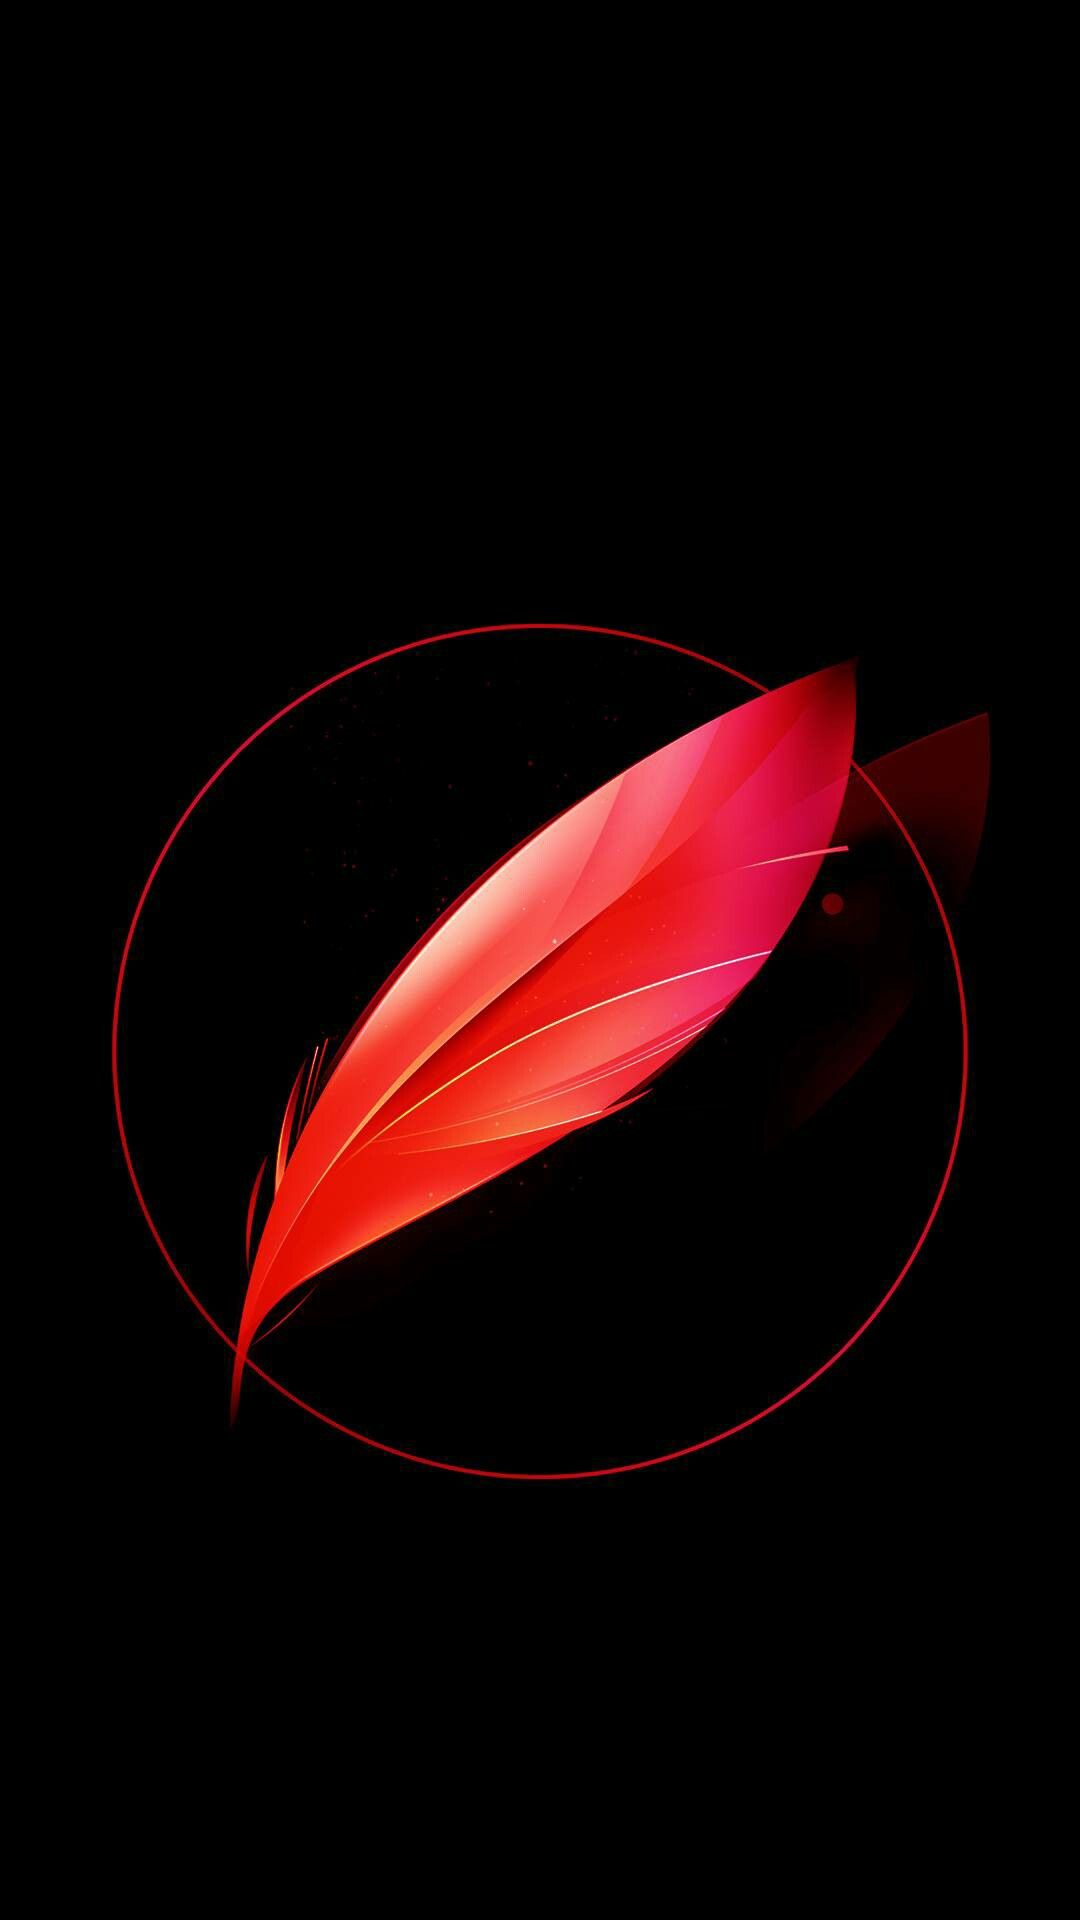 Pin By Satrangi Tv On Phone Backgrounds 05 Black Phone Wallpaper Graphic Wallpaper Android Wallpaper